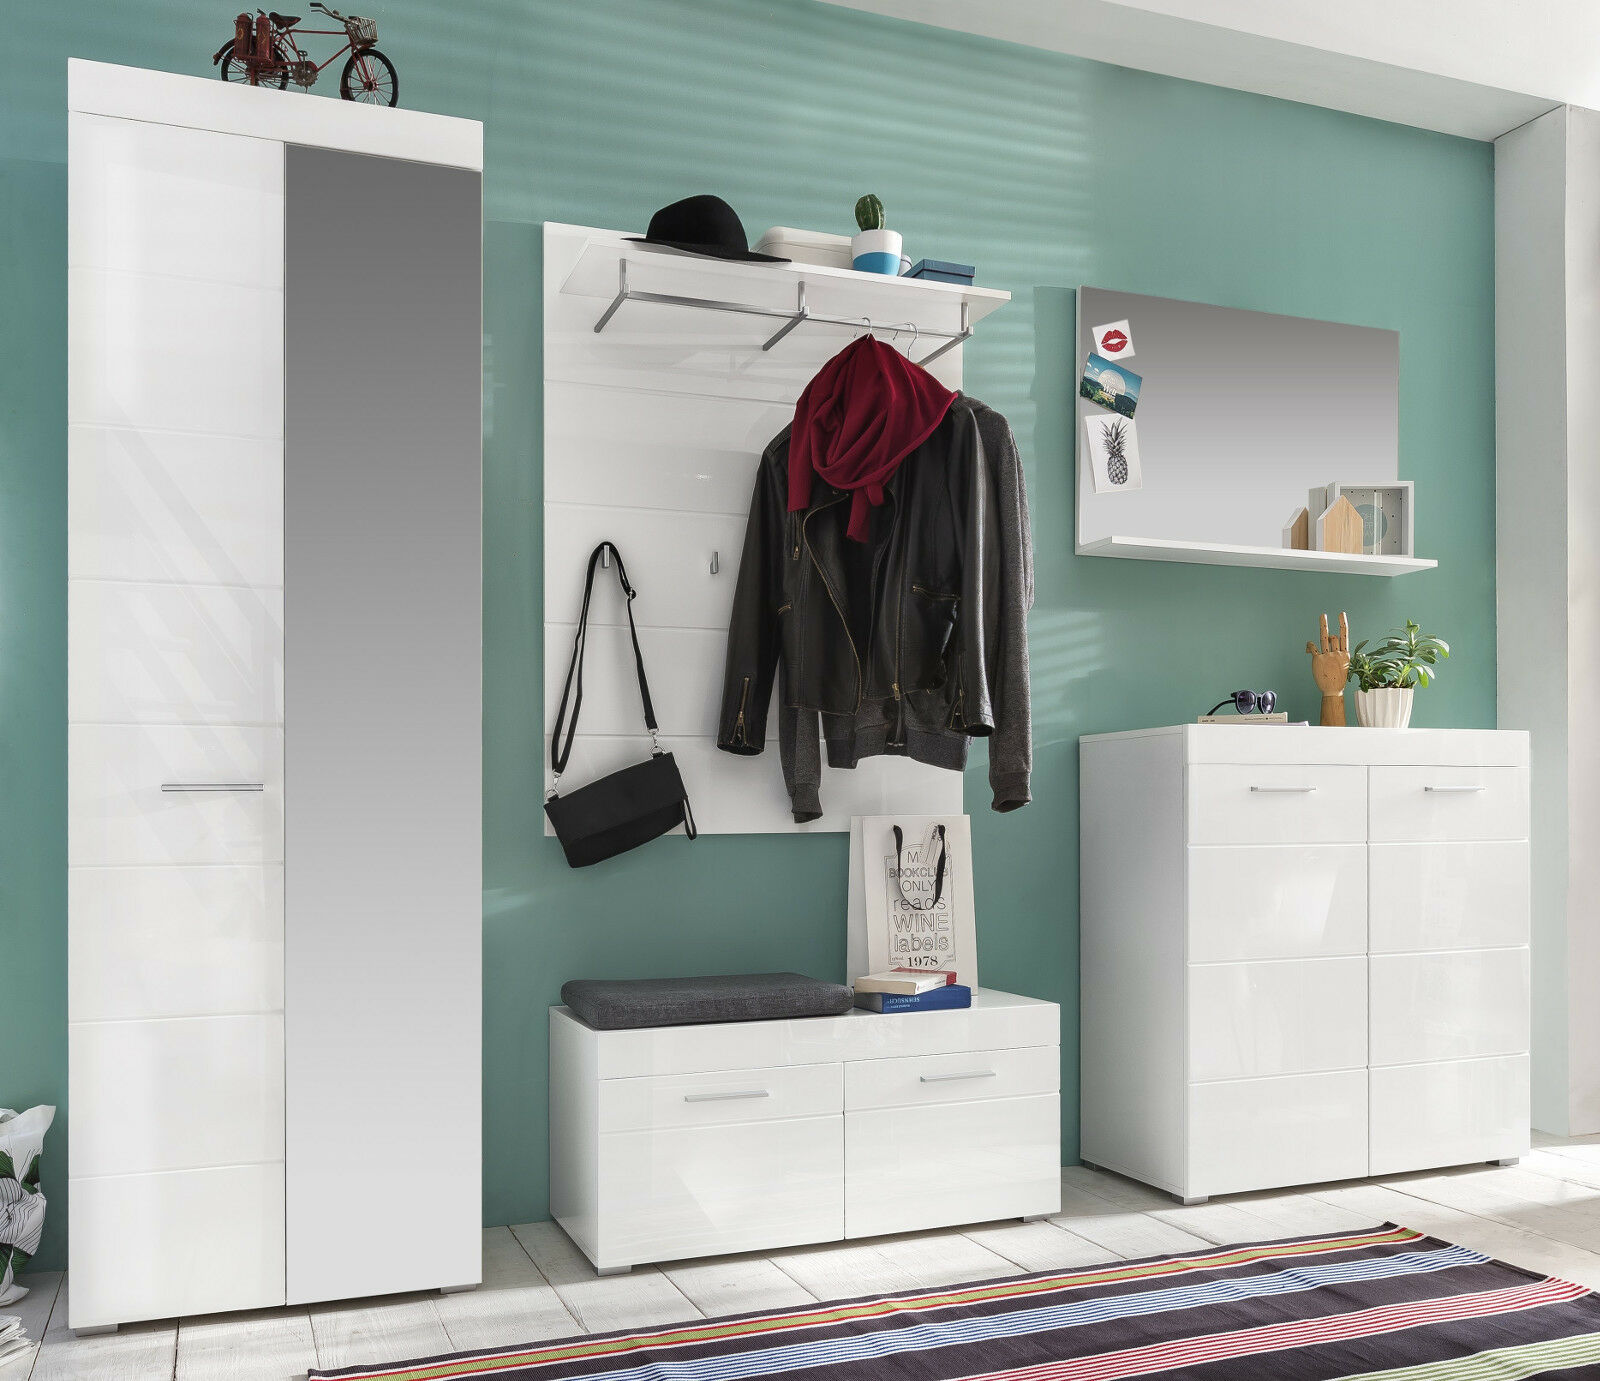 sitzbank weiss hochglanz bank schuhbank flur diele schuhschrank garderobe amanda eur 119 99. Black Bedroom Furniture Sets. Home Design Ideas